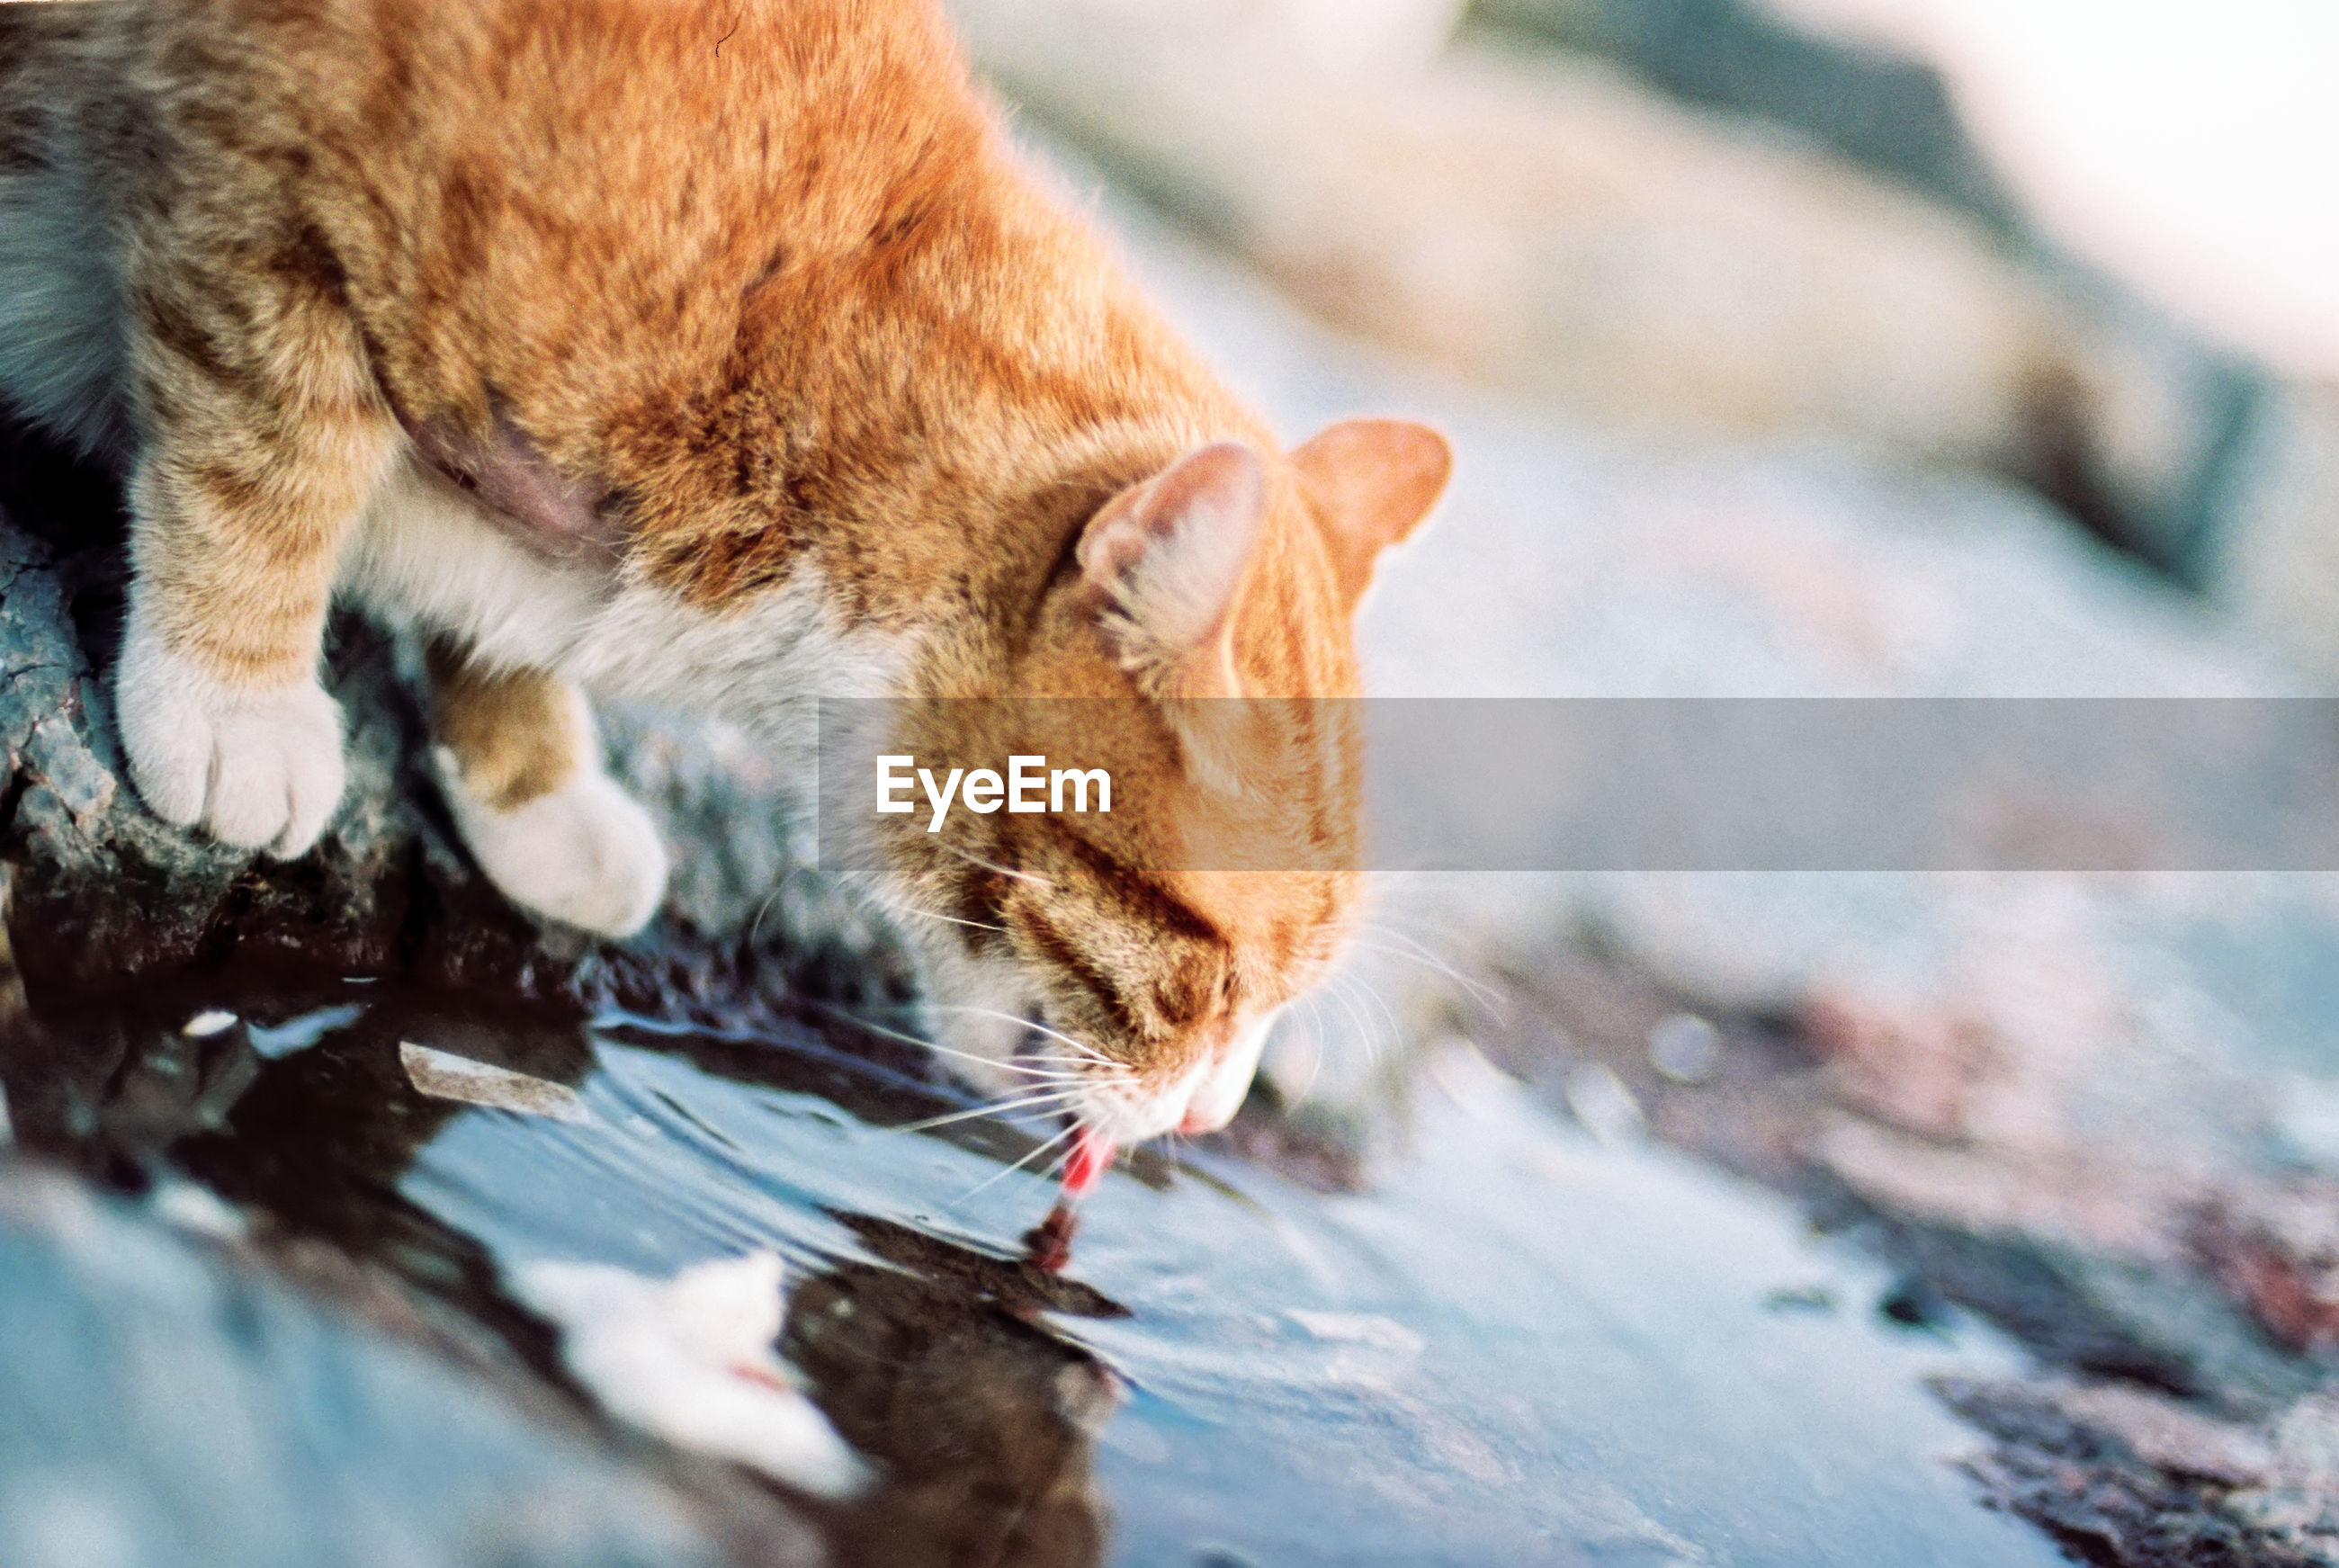 Close-up of cat drinking water from puddle